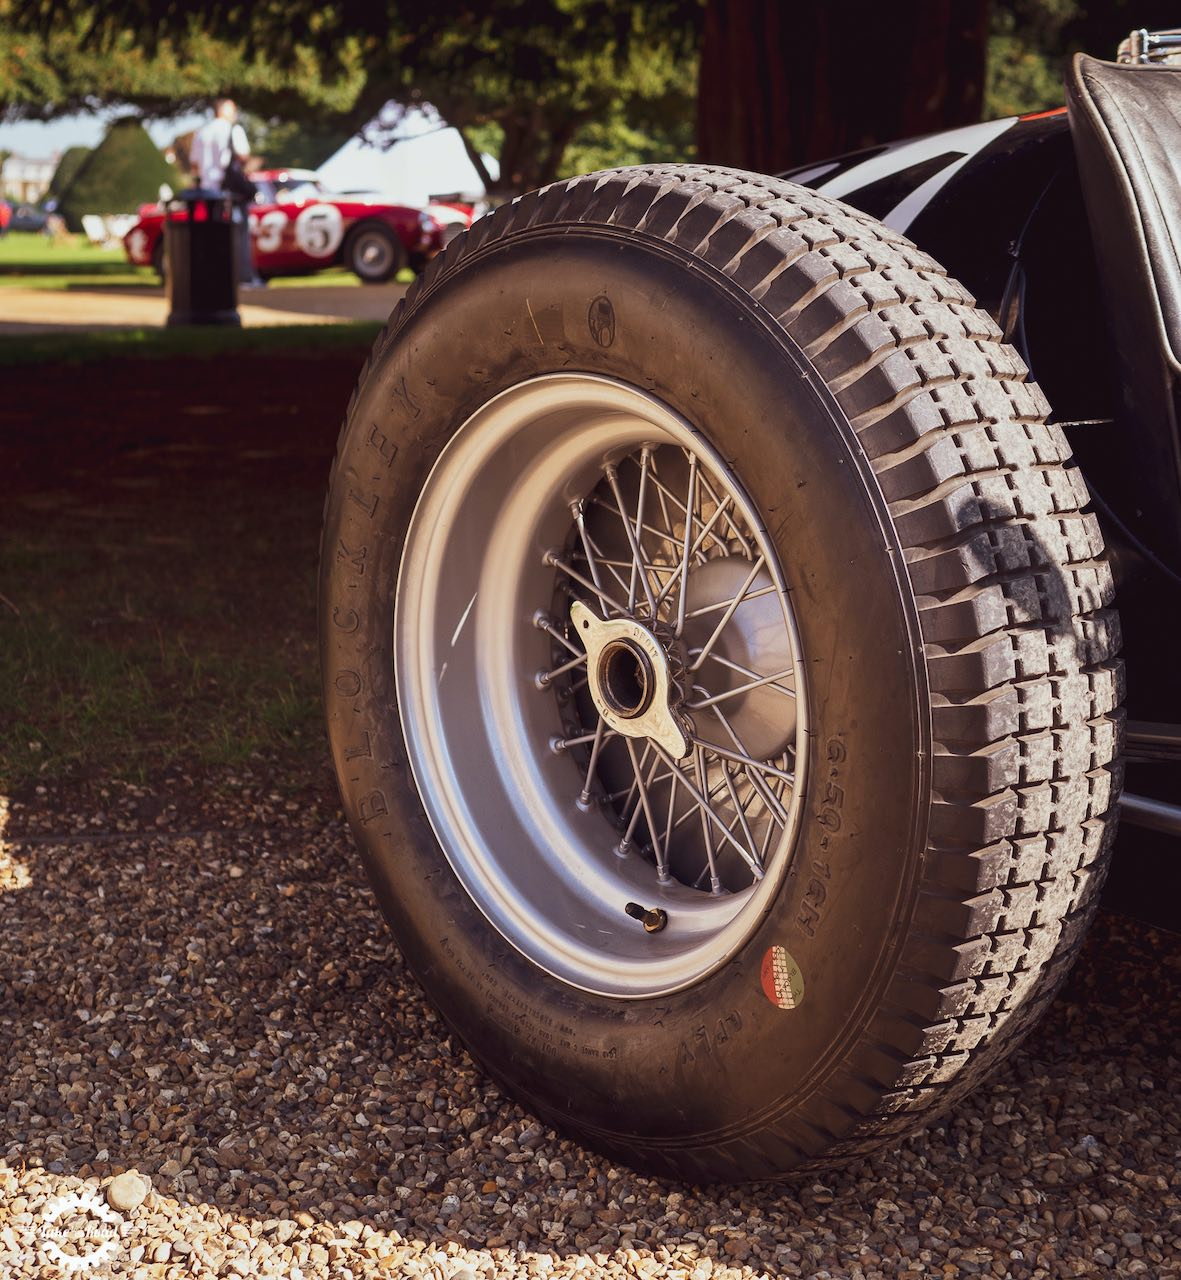 How to store a Classic Car for winter